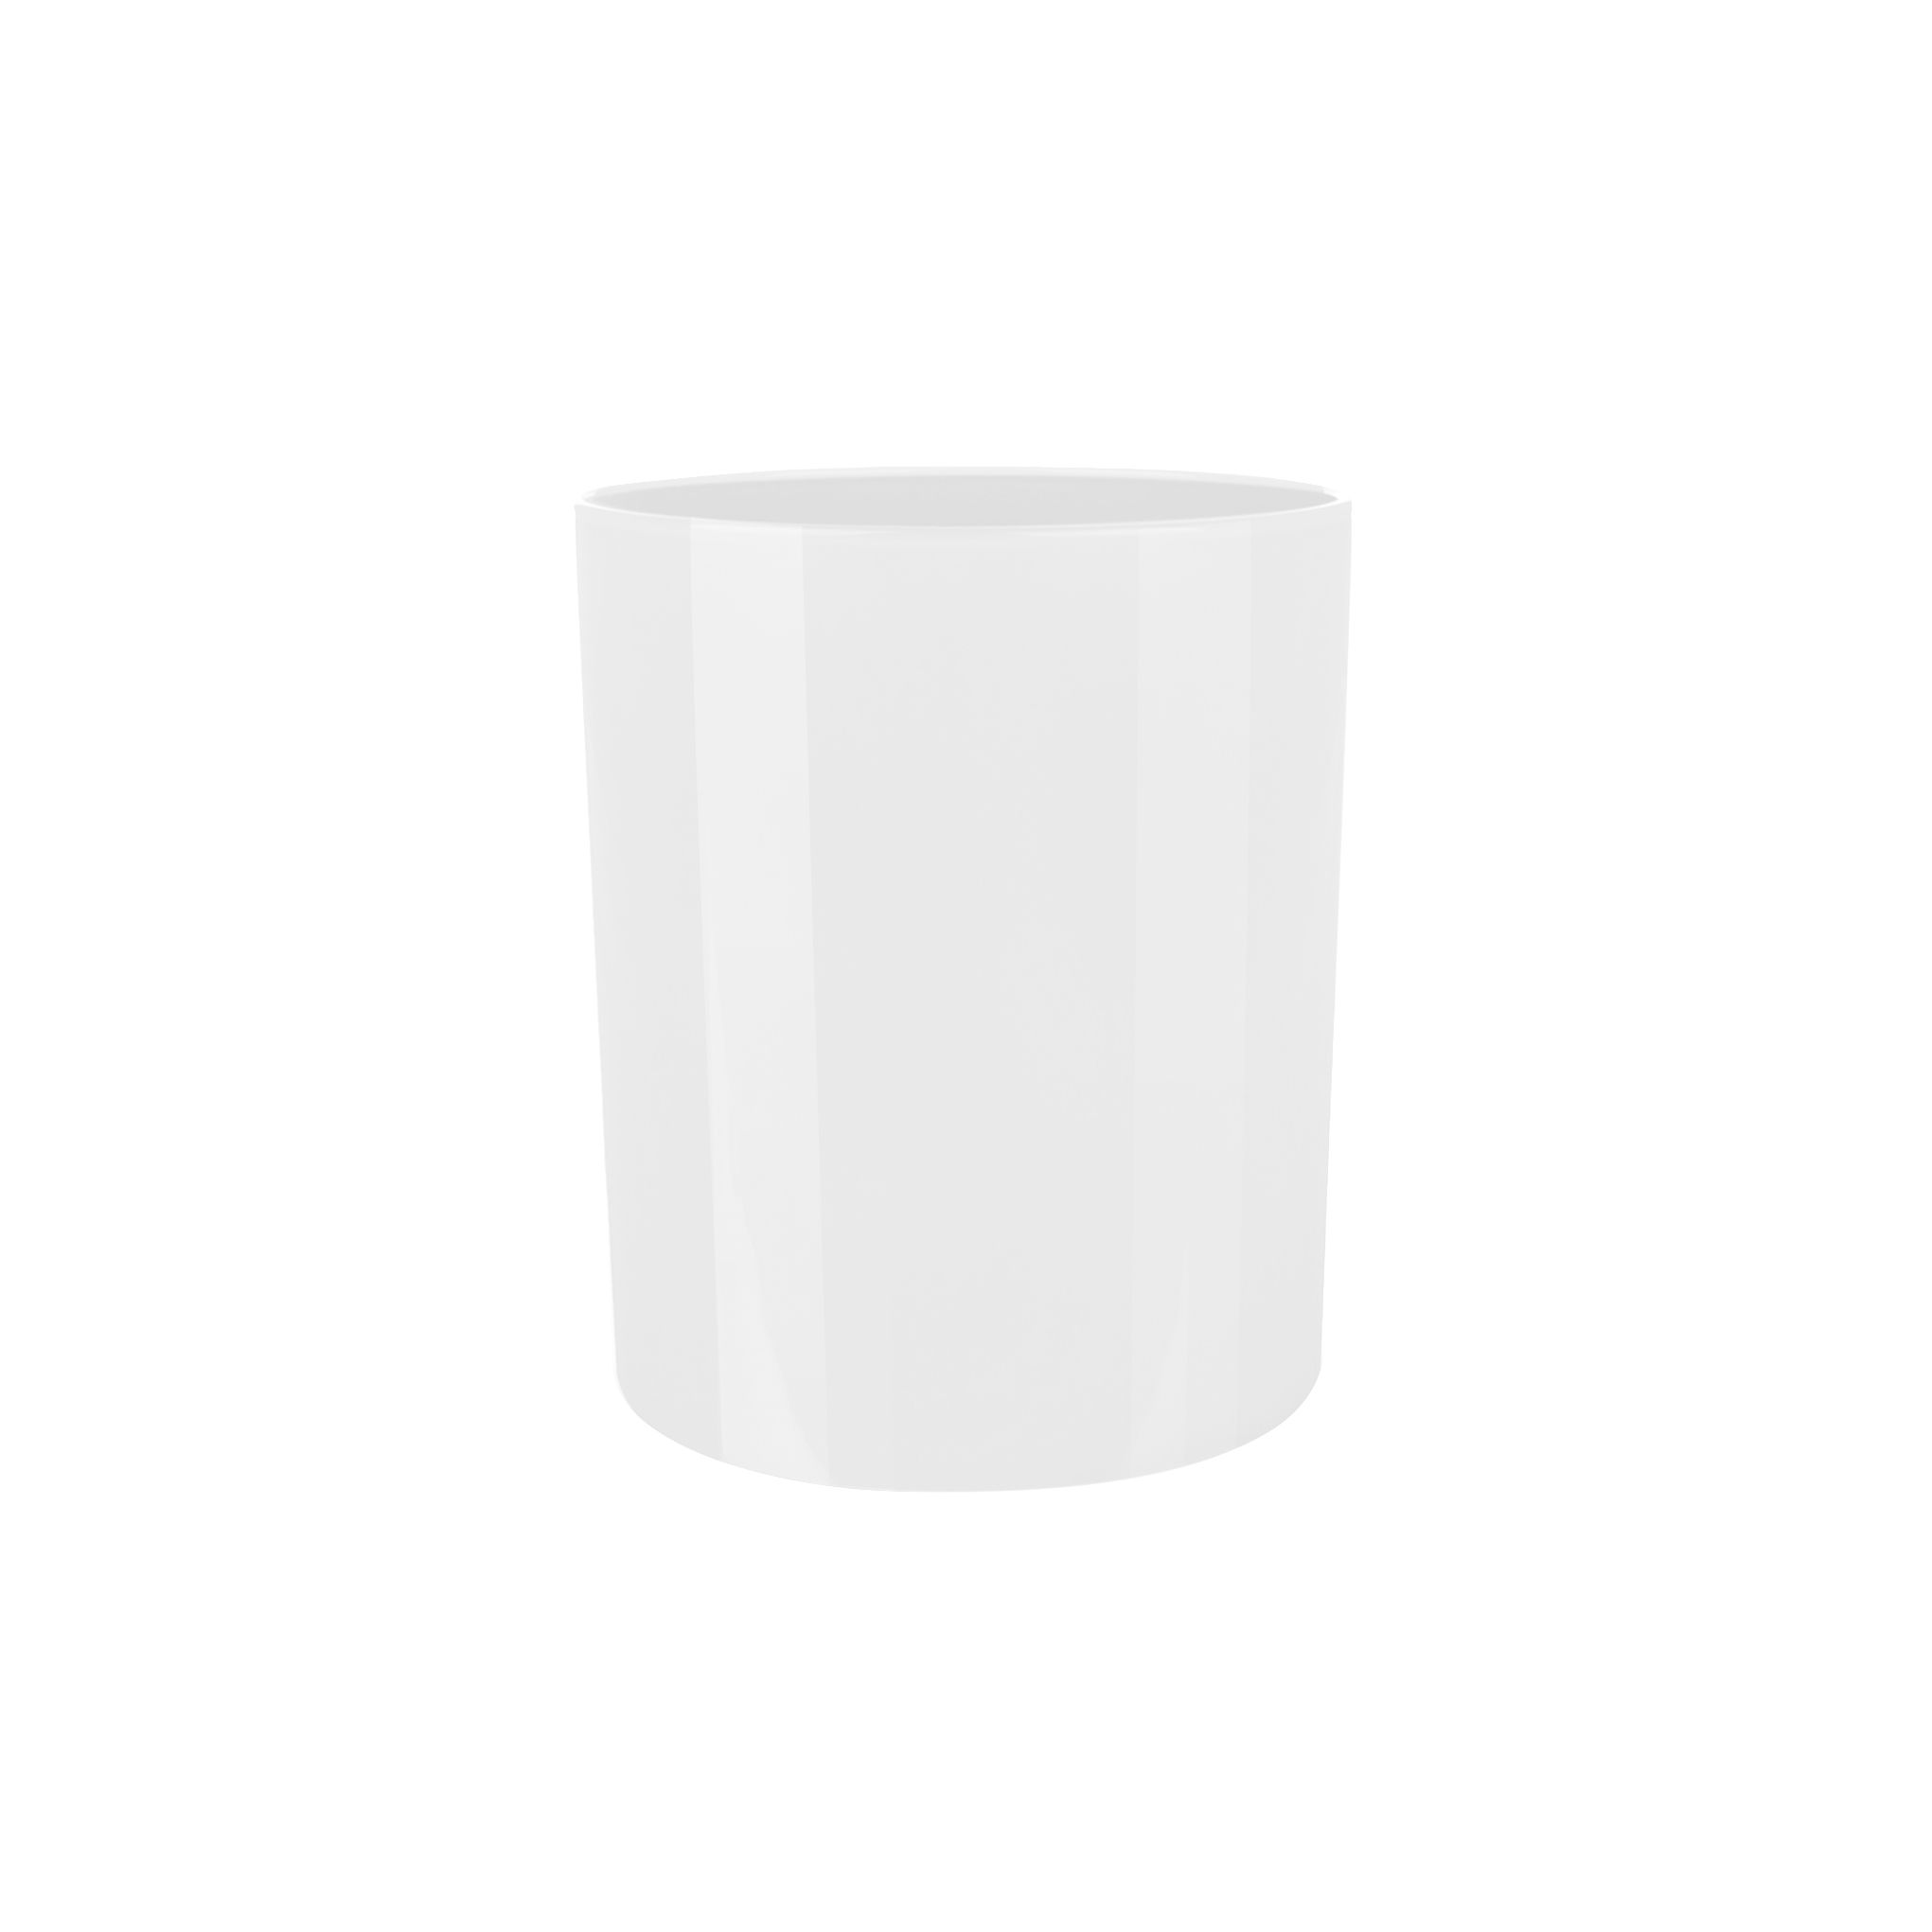 30cl White Gloss Candle Jar